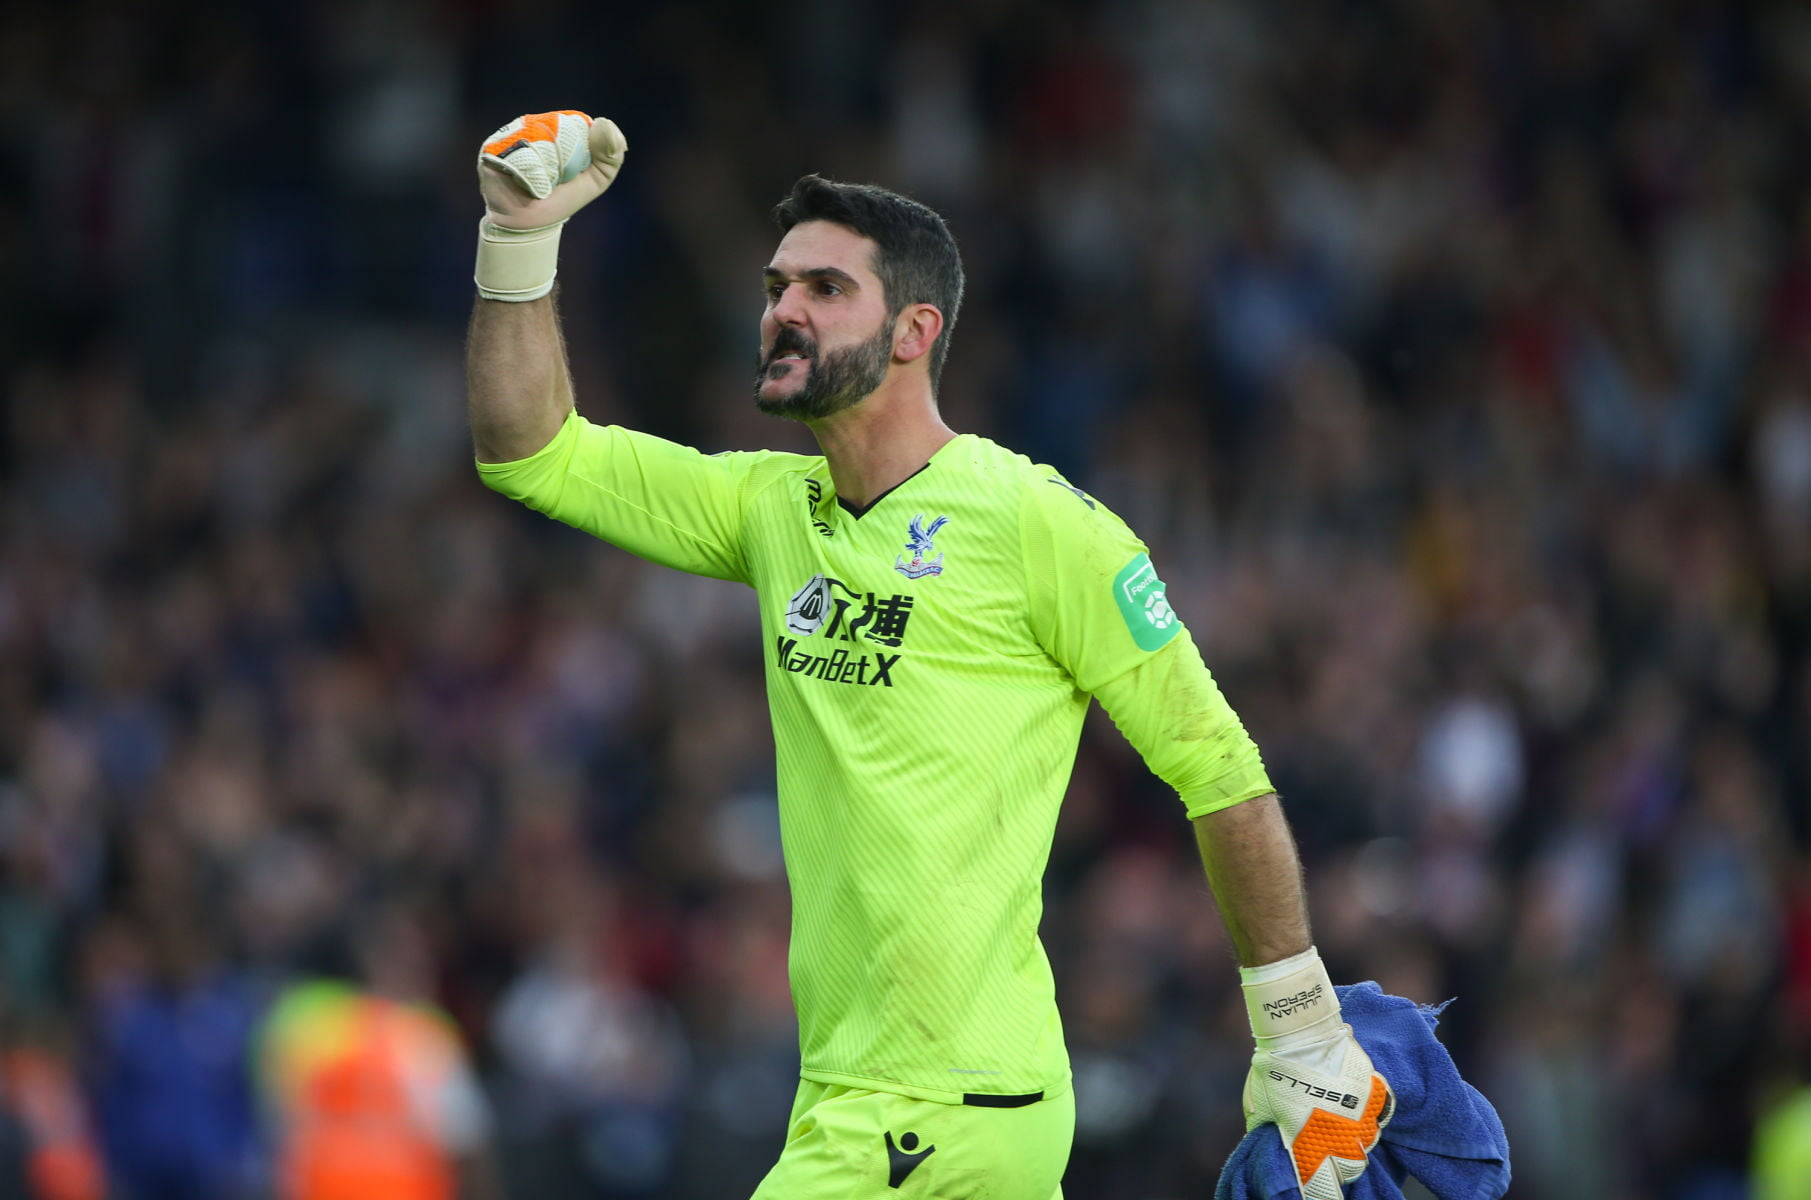 POLAND RIGHTS ONLY Julian Speroni of Crystal Palace celebrates the victory during the Premier League match between Crystal Palace and Chelsea at Selhurst Park on October 14th 2017 in London, England. (Photo by Arron Gent/phcimages.com) PILKA NOZNA SEZON 2017/2018 LIGA ANGIELSKA FOT. PHCIMAGES/NEWSPIX.PL POLAND ONLY! --- Newspix.pl *** Local Caption *** www.newspix.pl mail us: info@newspix.pl call us: 0048 022 23 22 222 --- Polish Picture Agency by Ringier Axel Springer Poland